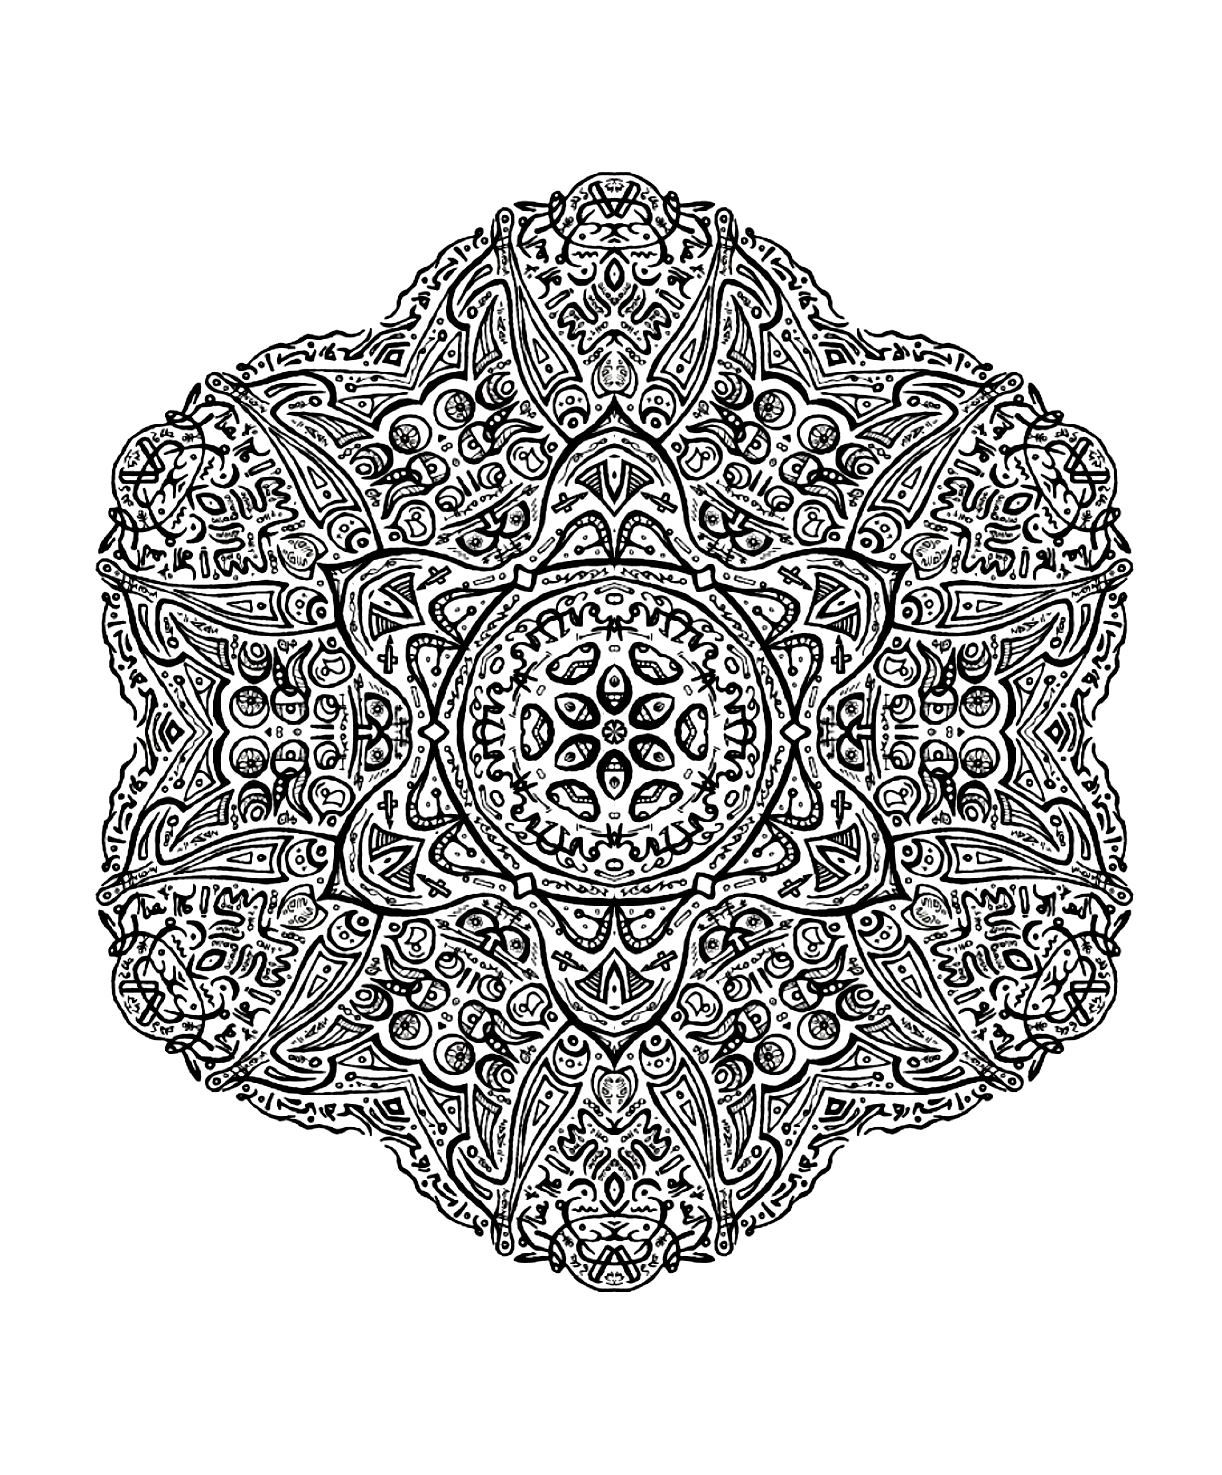 Free Mandalas To Print And Color Very Difficult Mandalas For Adults Mandala Coloring Pages Mandala Coloring Detailed Coloring Pages